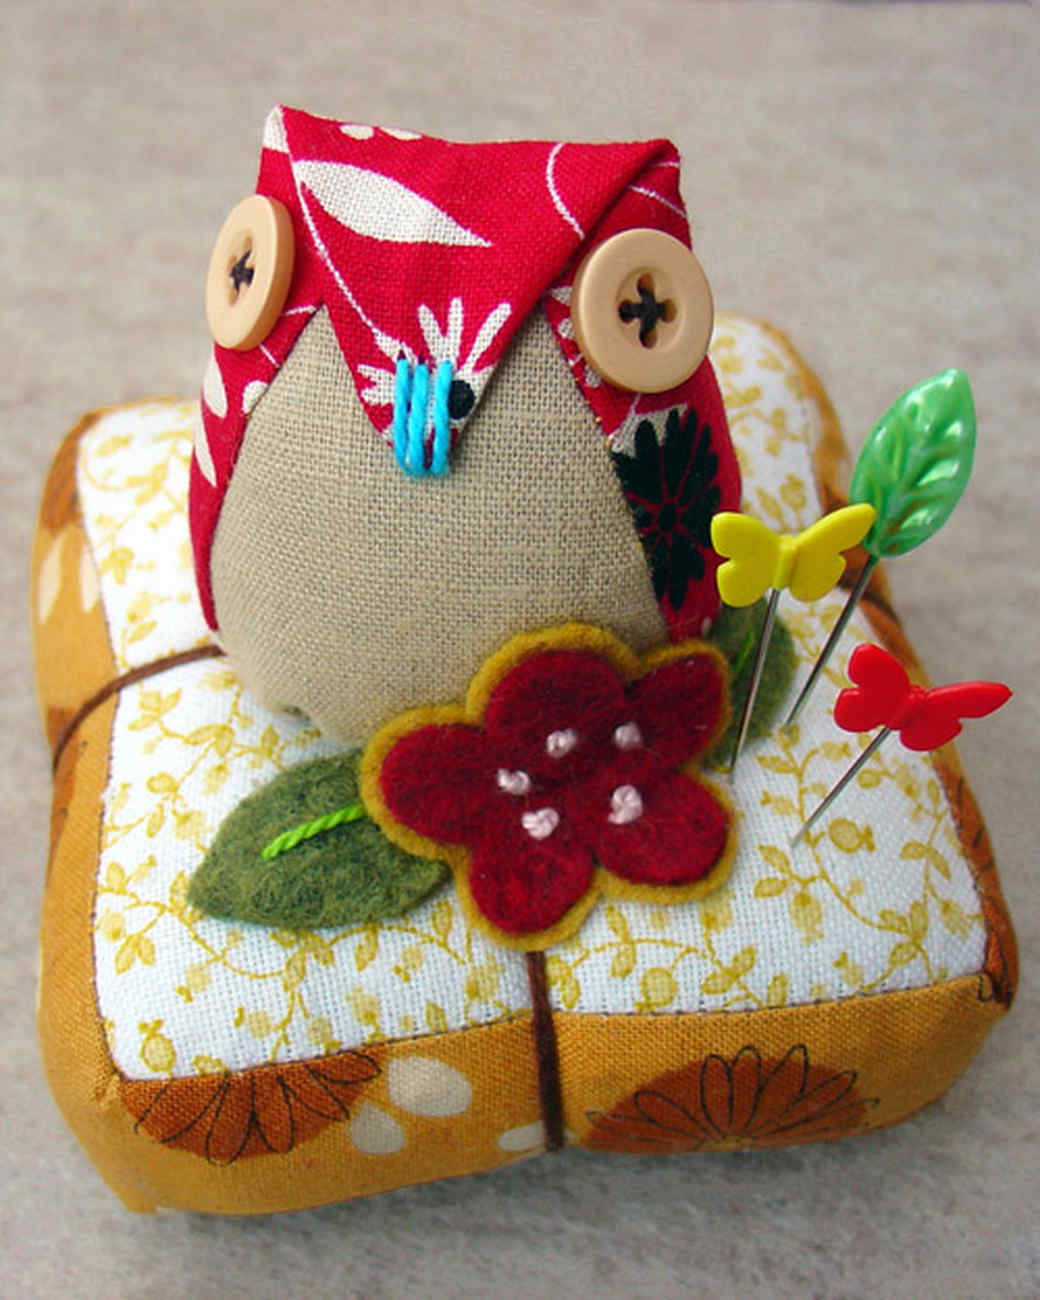 crafter_owl_pincushion.jpg